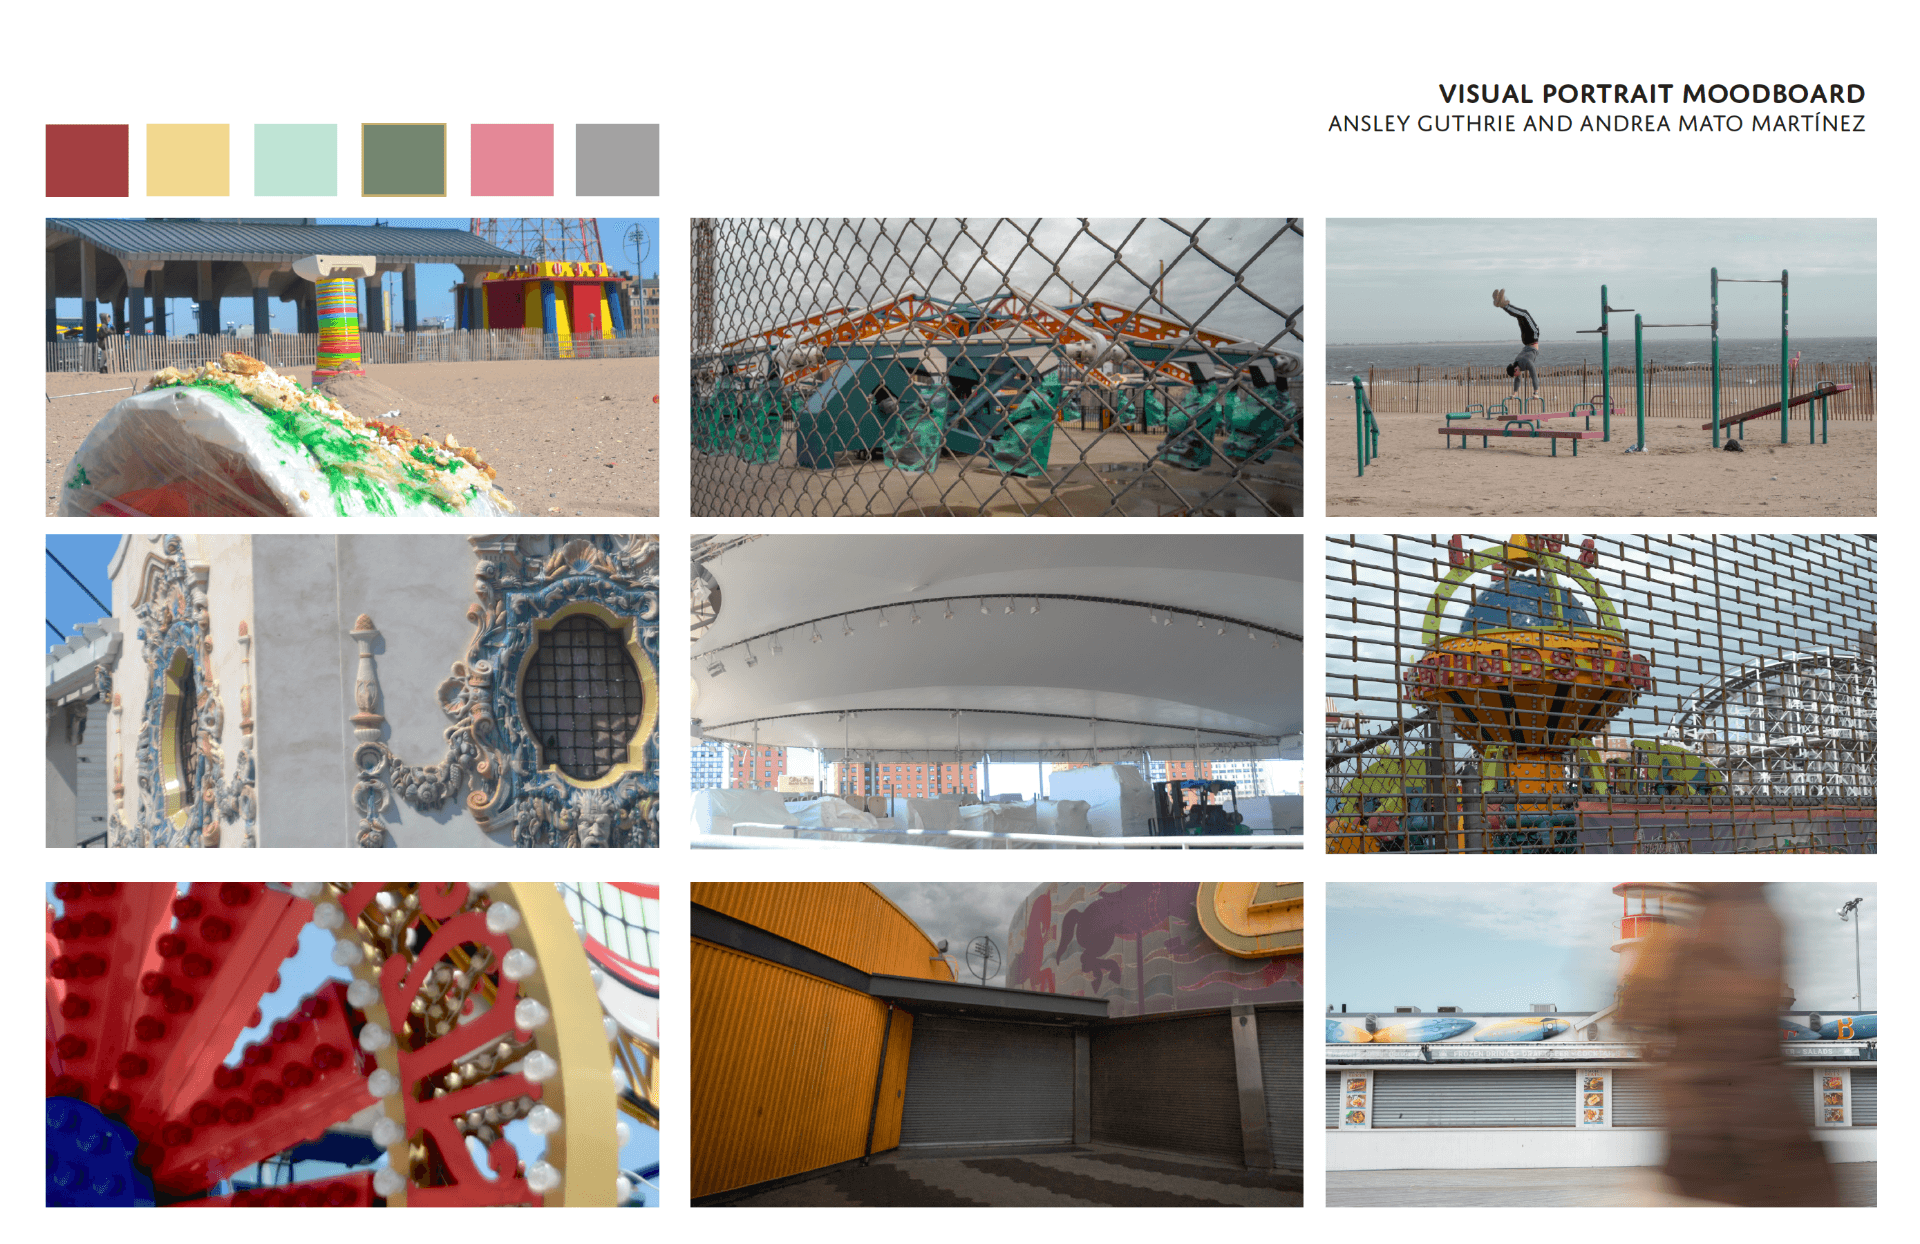 Visual Portrait of Coney Island